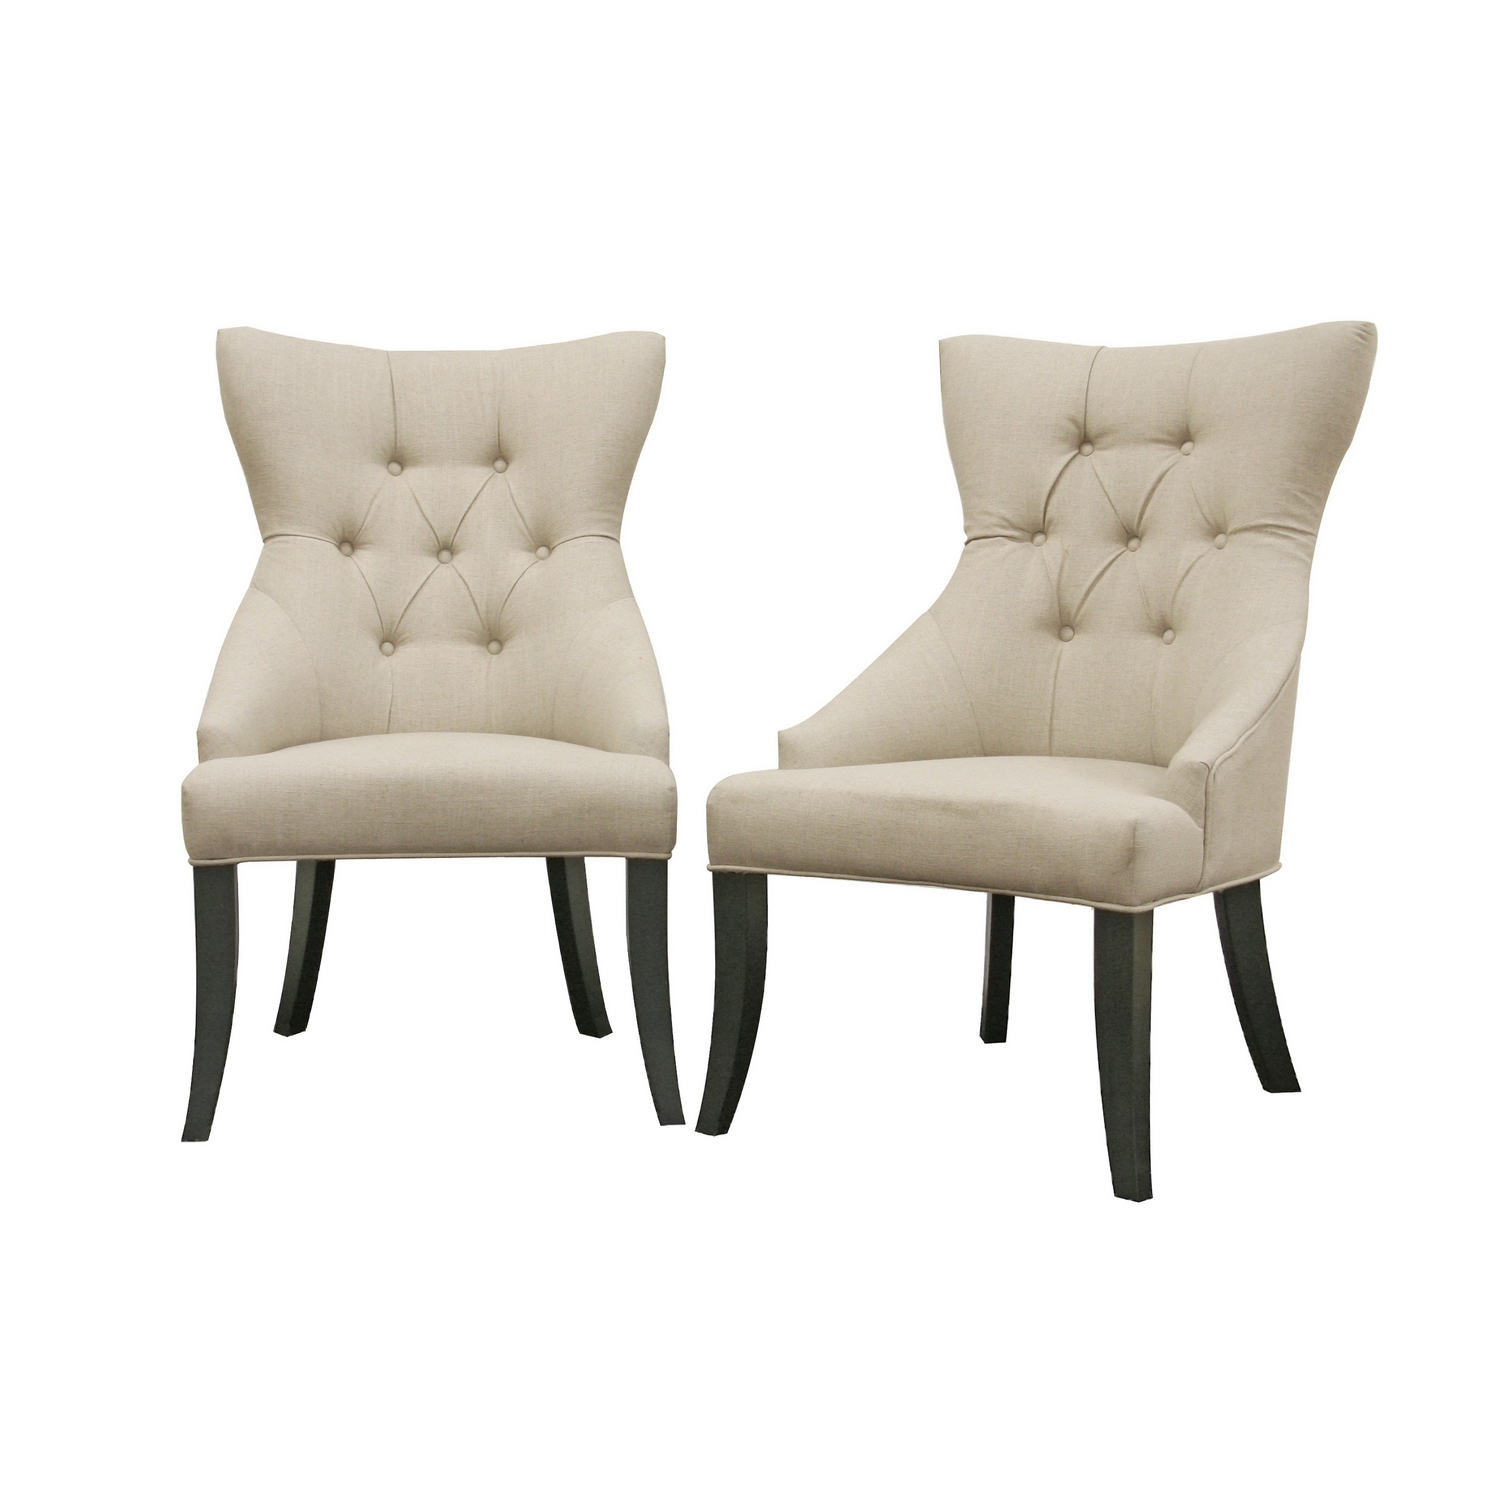 Stunning Modern Dining Room Chairs Fabric 1500 x 1500 · 543 kB · jpeg